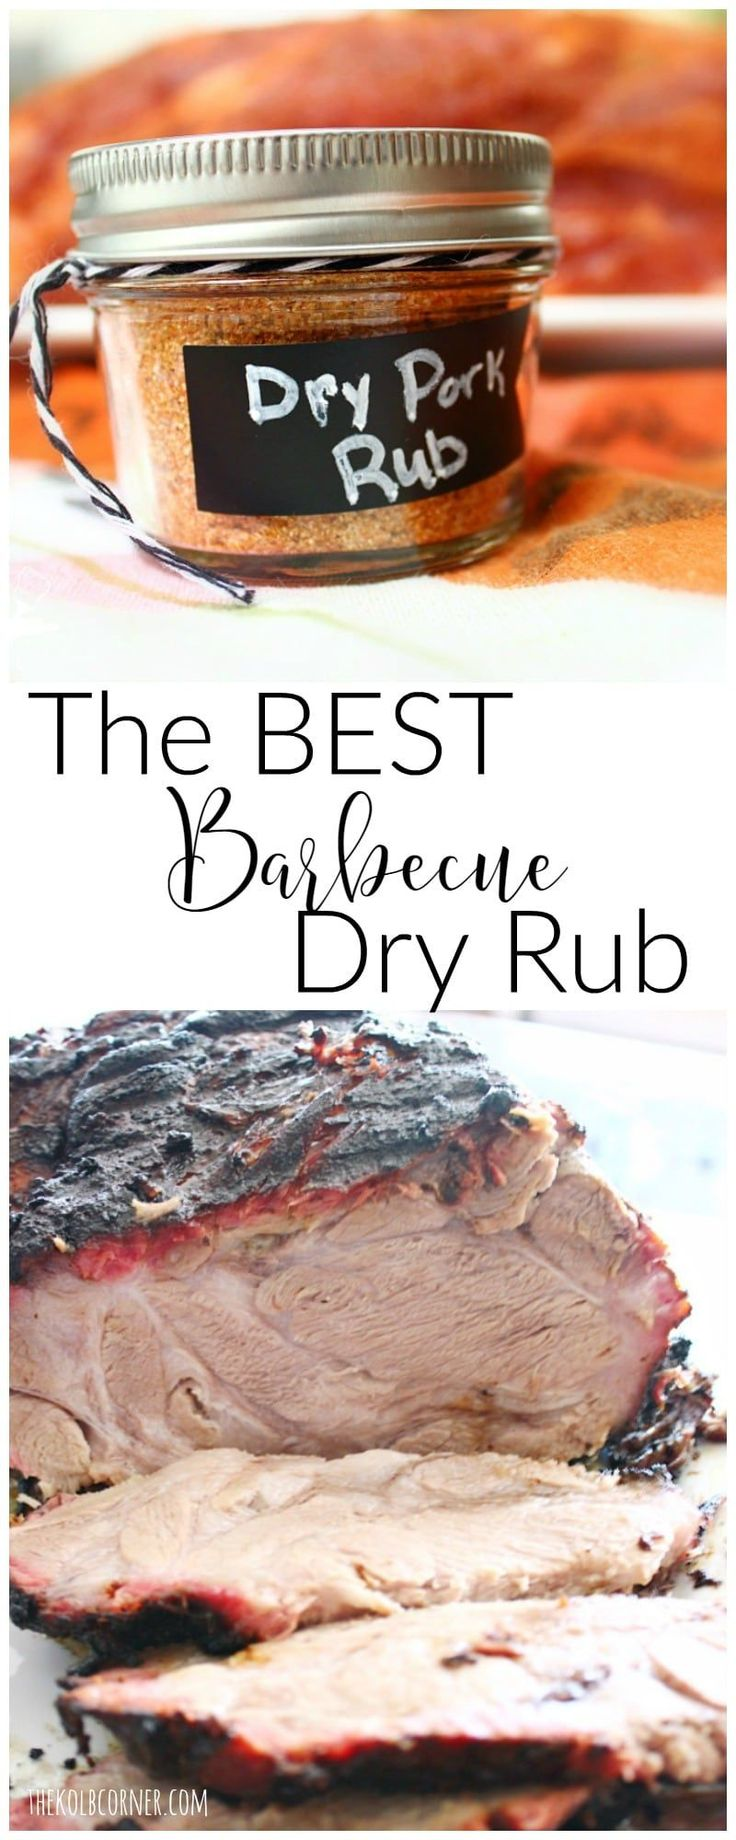 The Best Barbecue Dry Rub